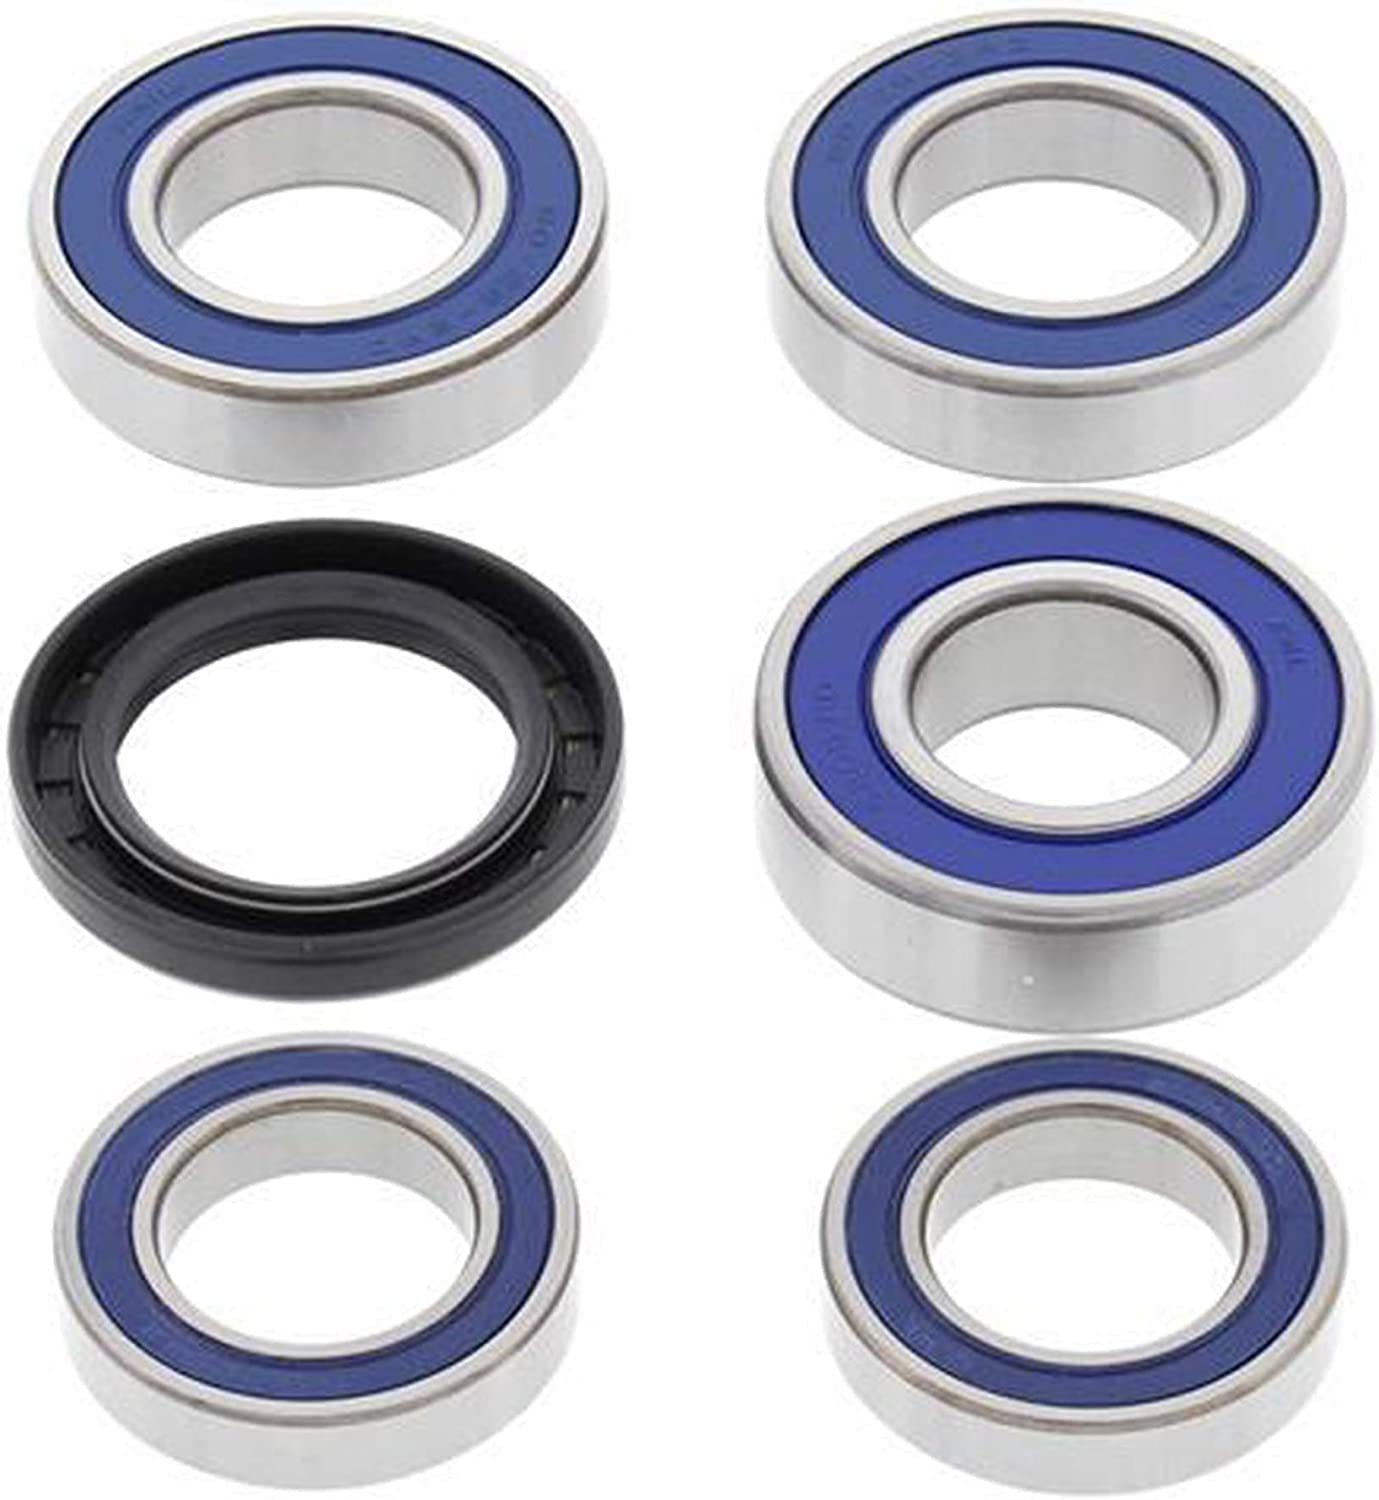 Wheel Bearing and Super intense SALE Seal Kit Fits Fury ABS VT13CXA Honda 2010 Today's only